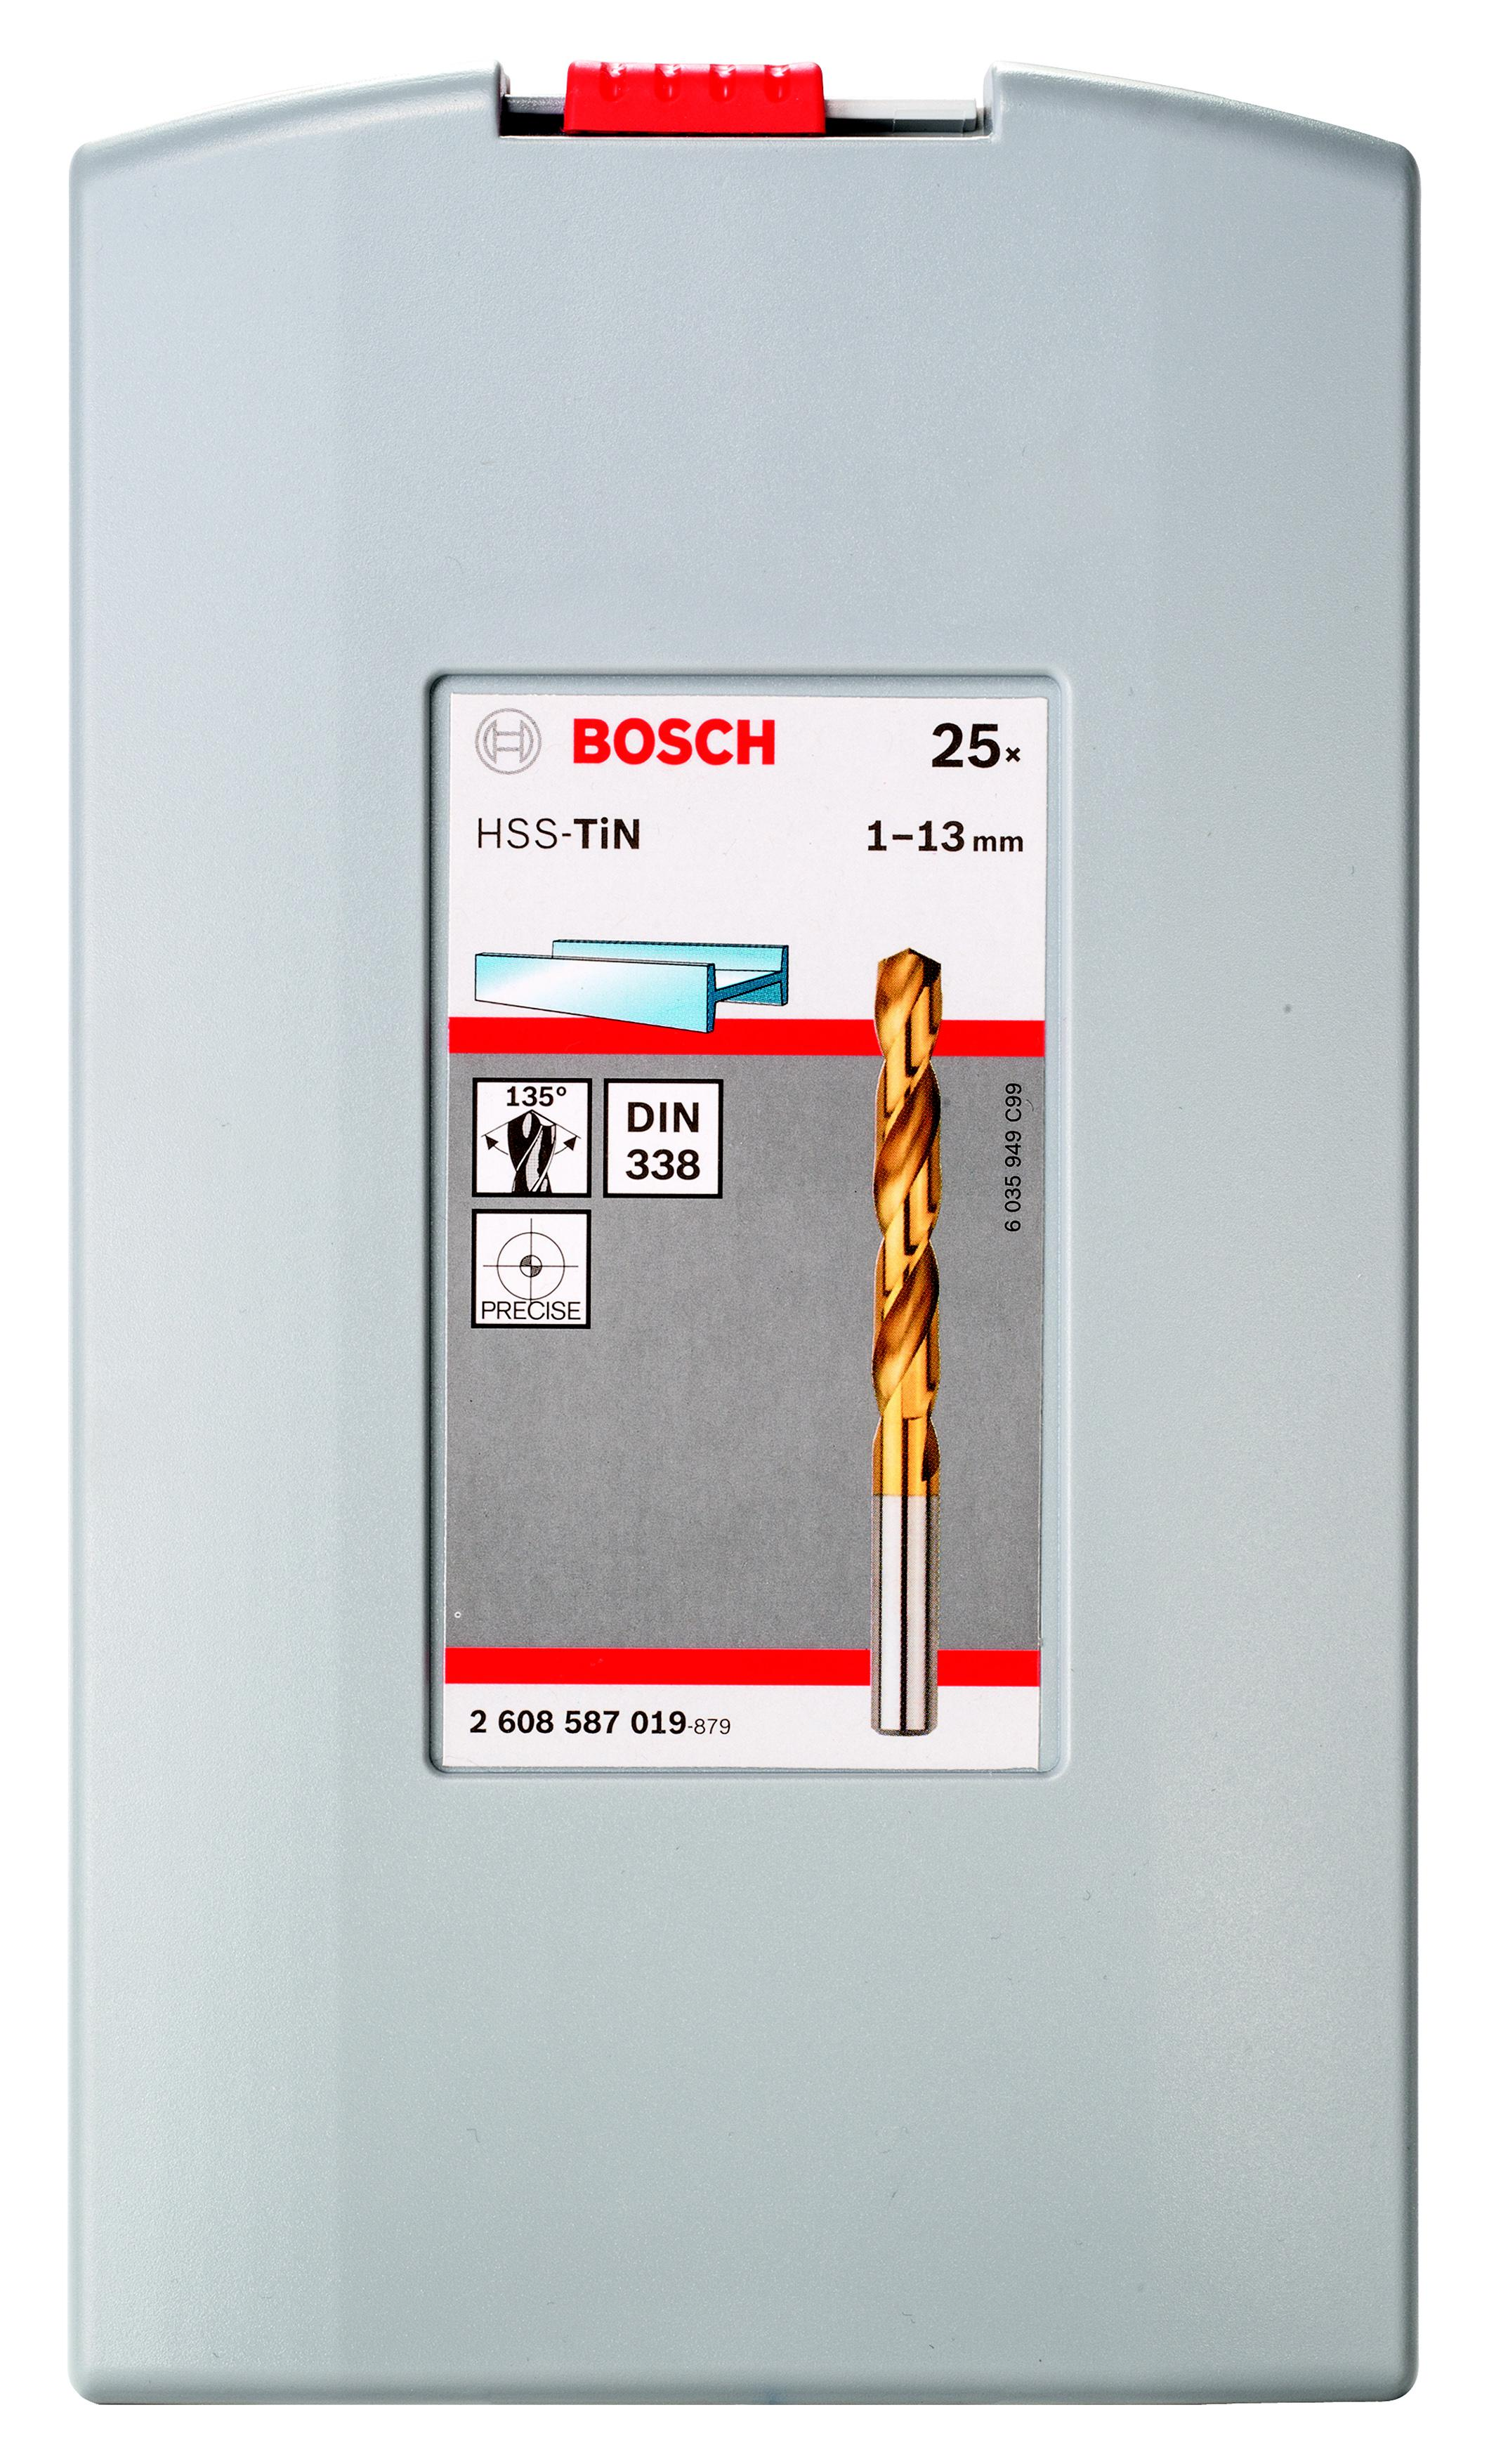 Набор сверл Bosch Probox hss-tin 25 шт. (2.608.587.019) nanibon кардиган